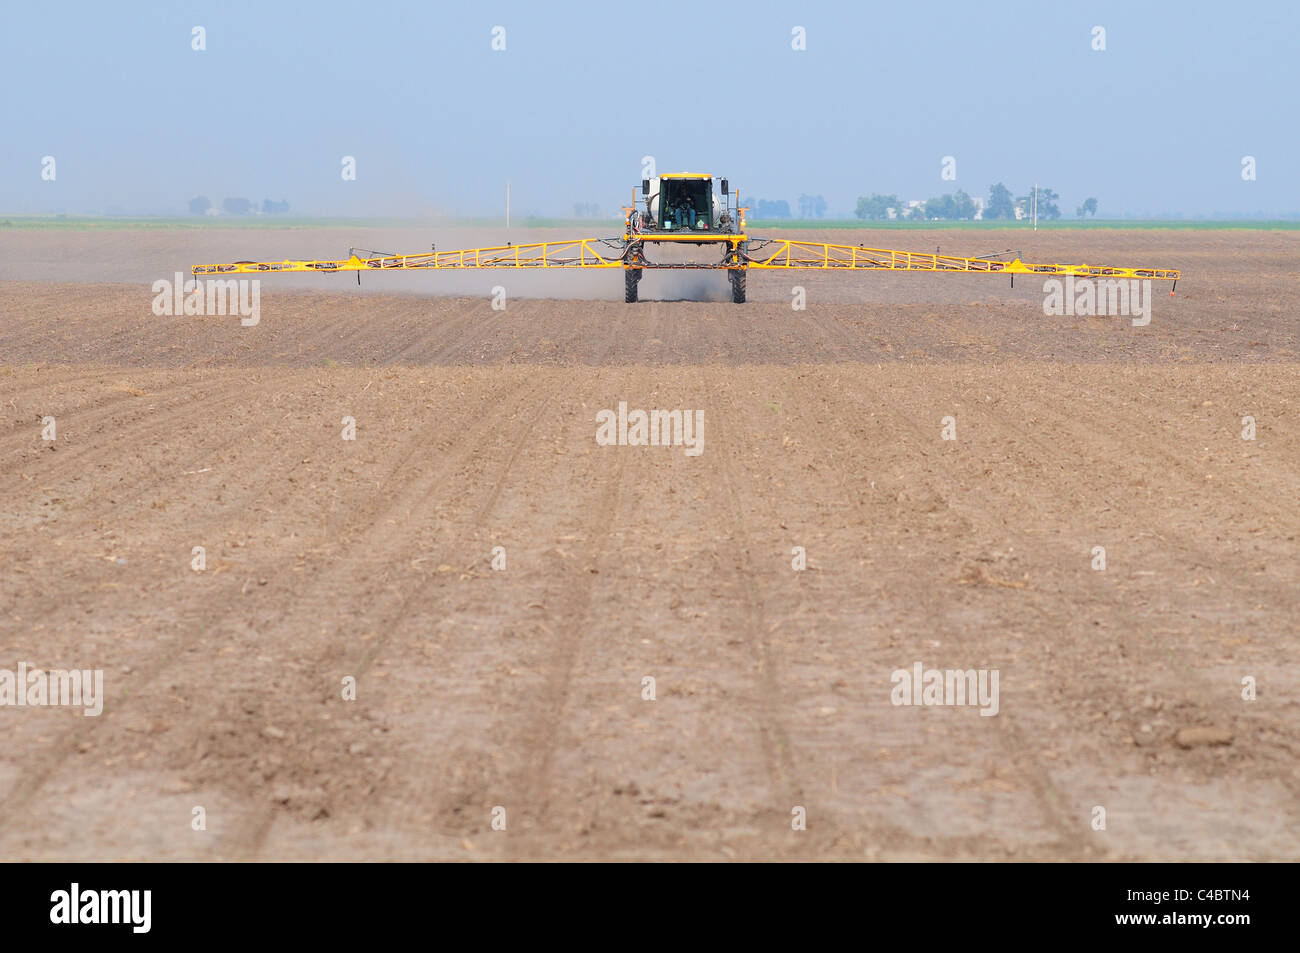 Self propelled crop sprayer spraying herbicide or insecticide on a pre emergent farm field. - Stock Image